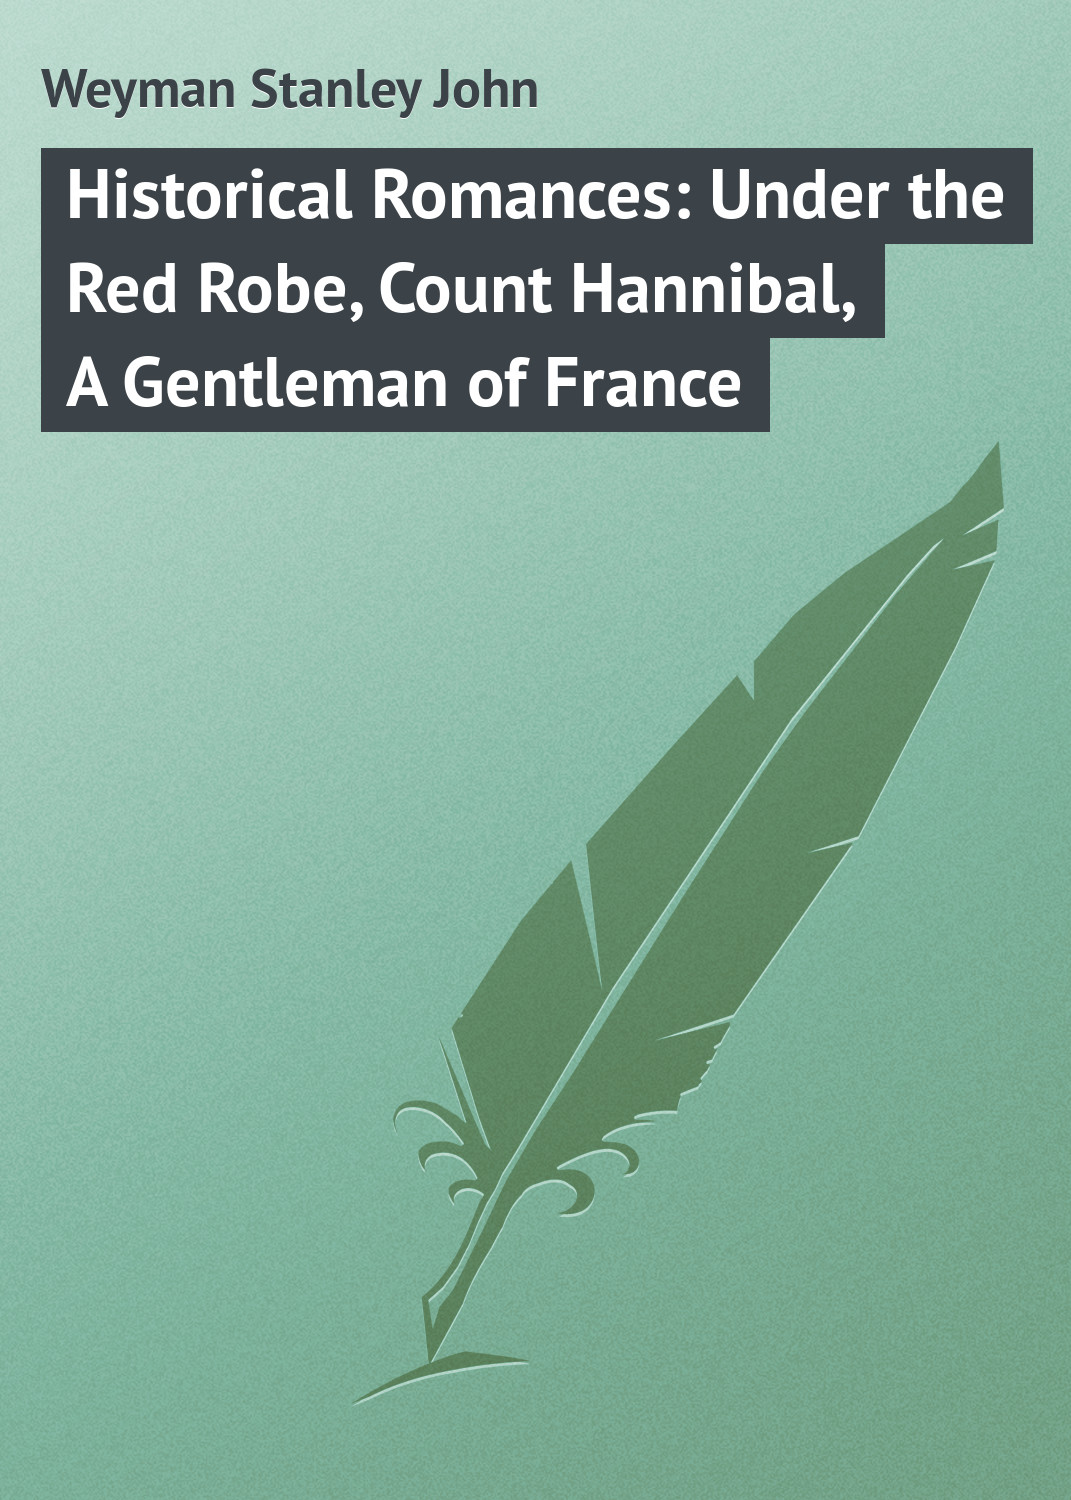 Weyman Stanley John Historical Romances: Under the Red Robe, Count Hannibal, A Gentleman of France